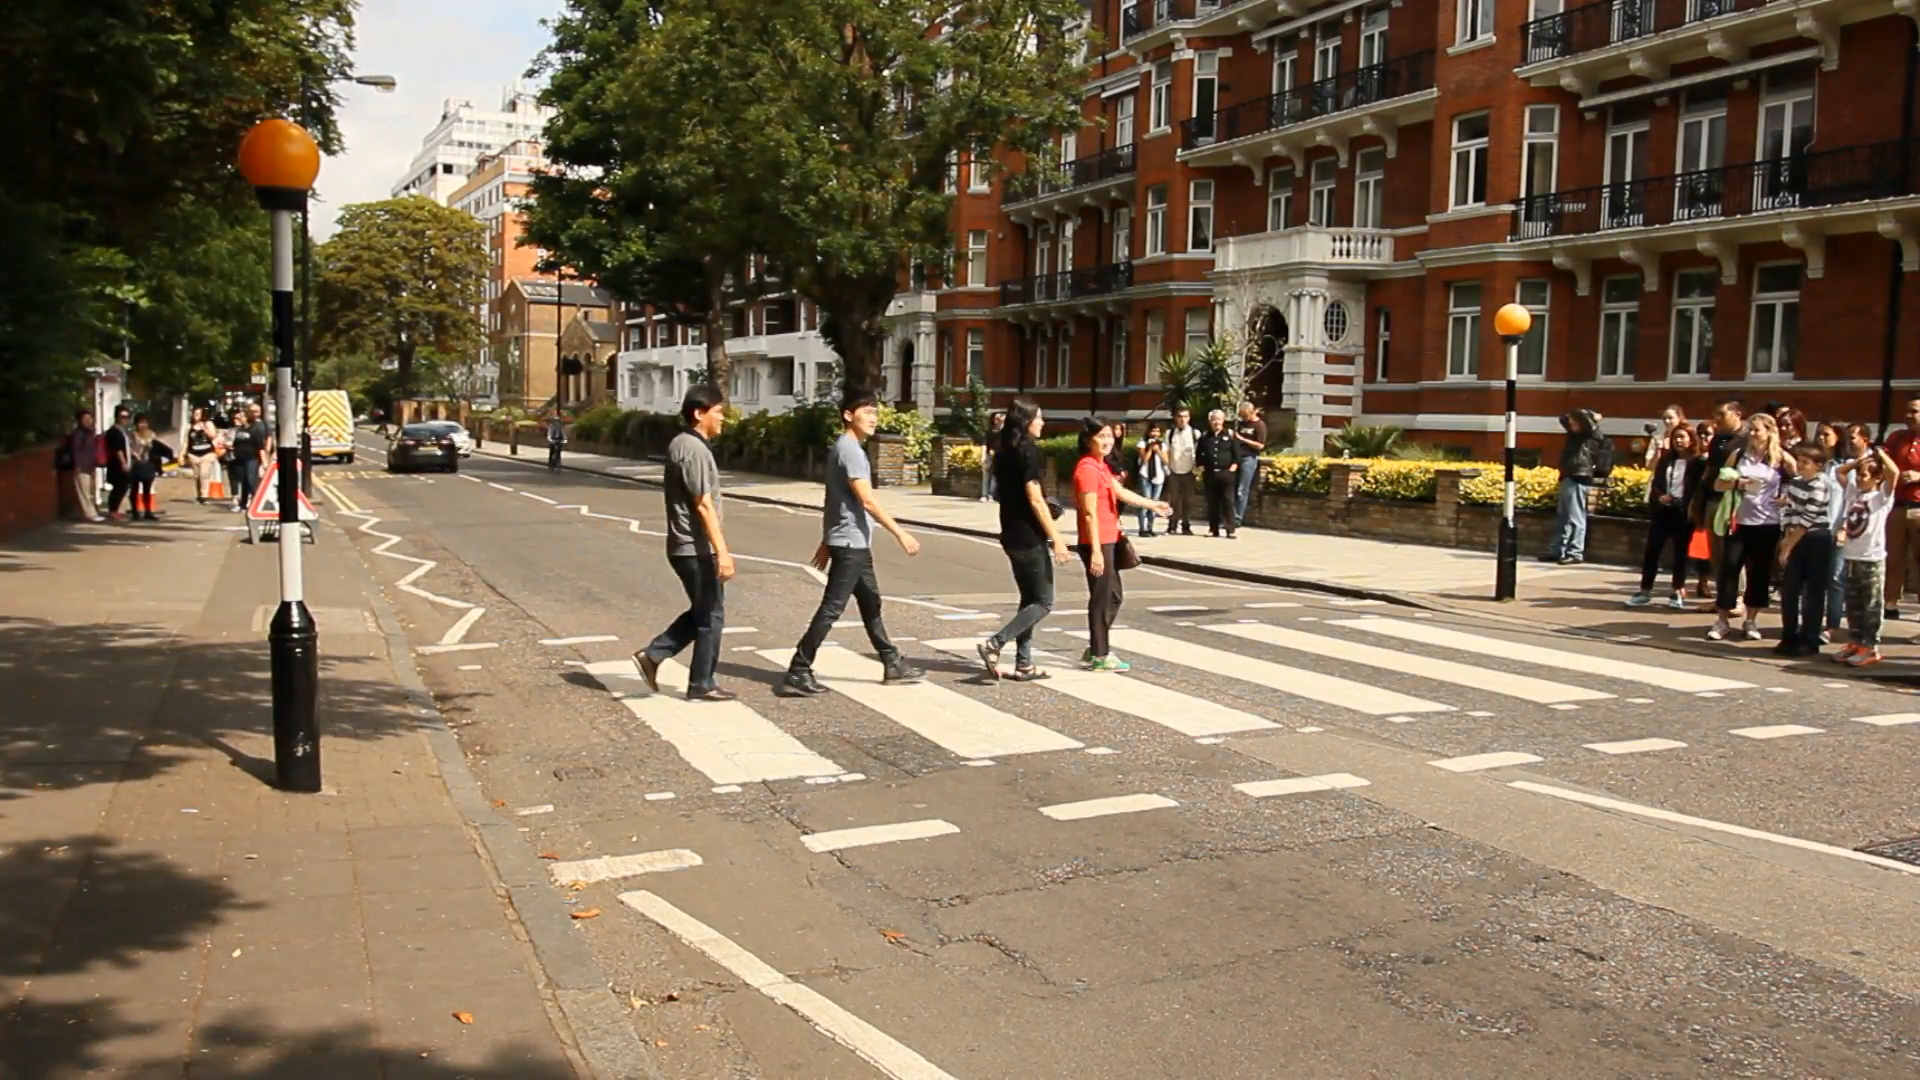 People crossing the street in front of Abbey Road studios, London ...